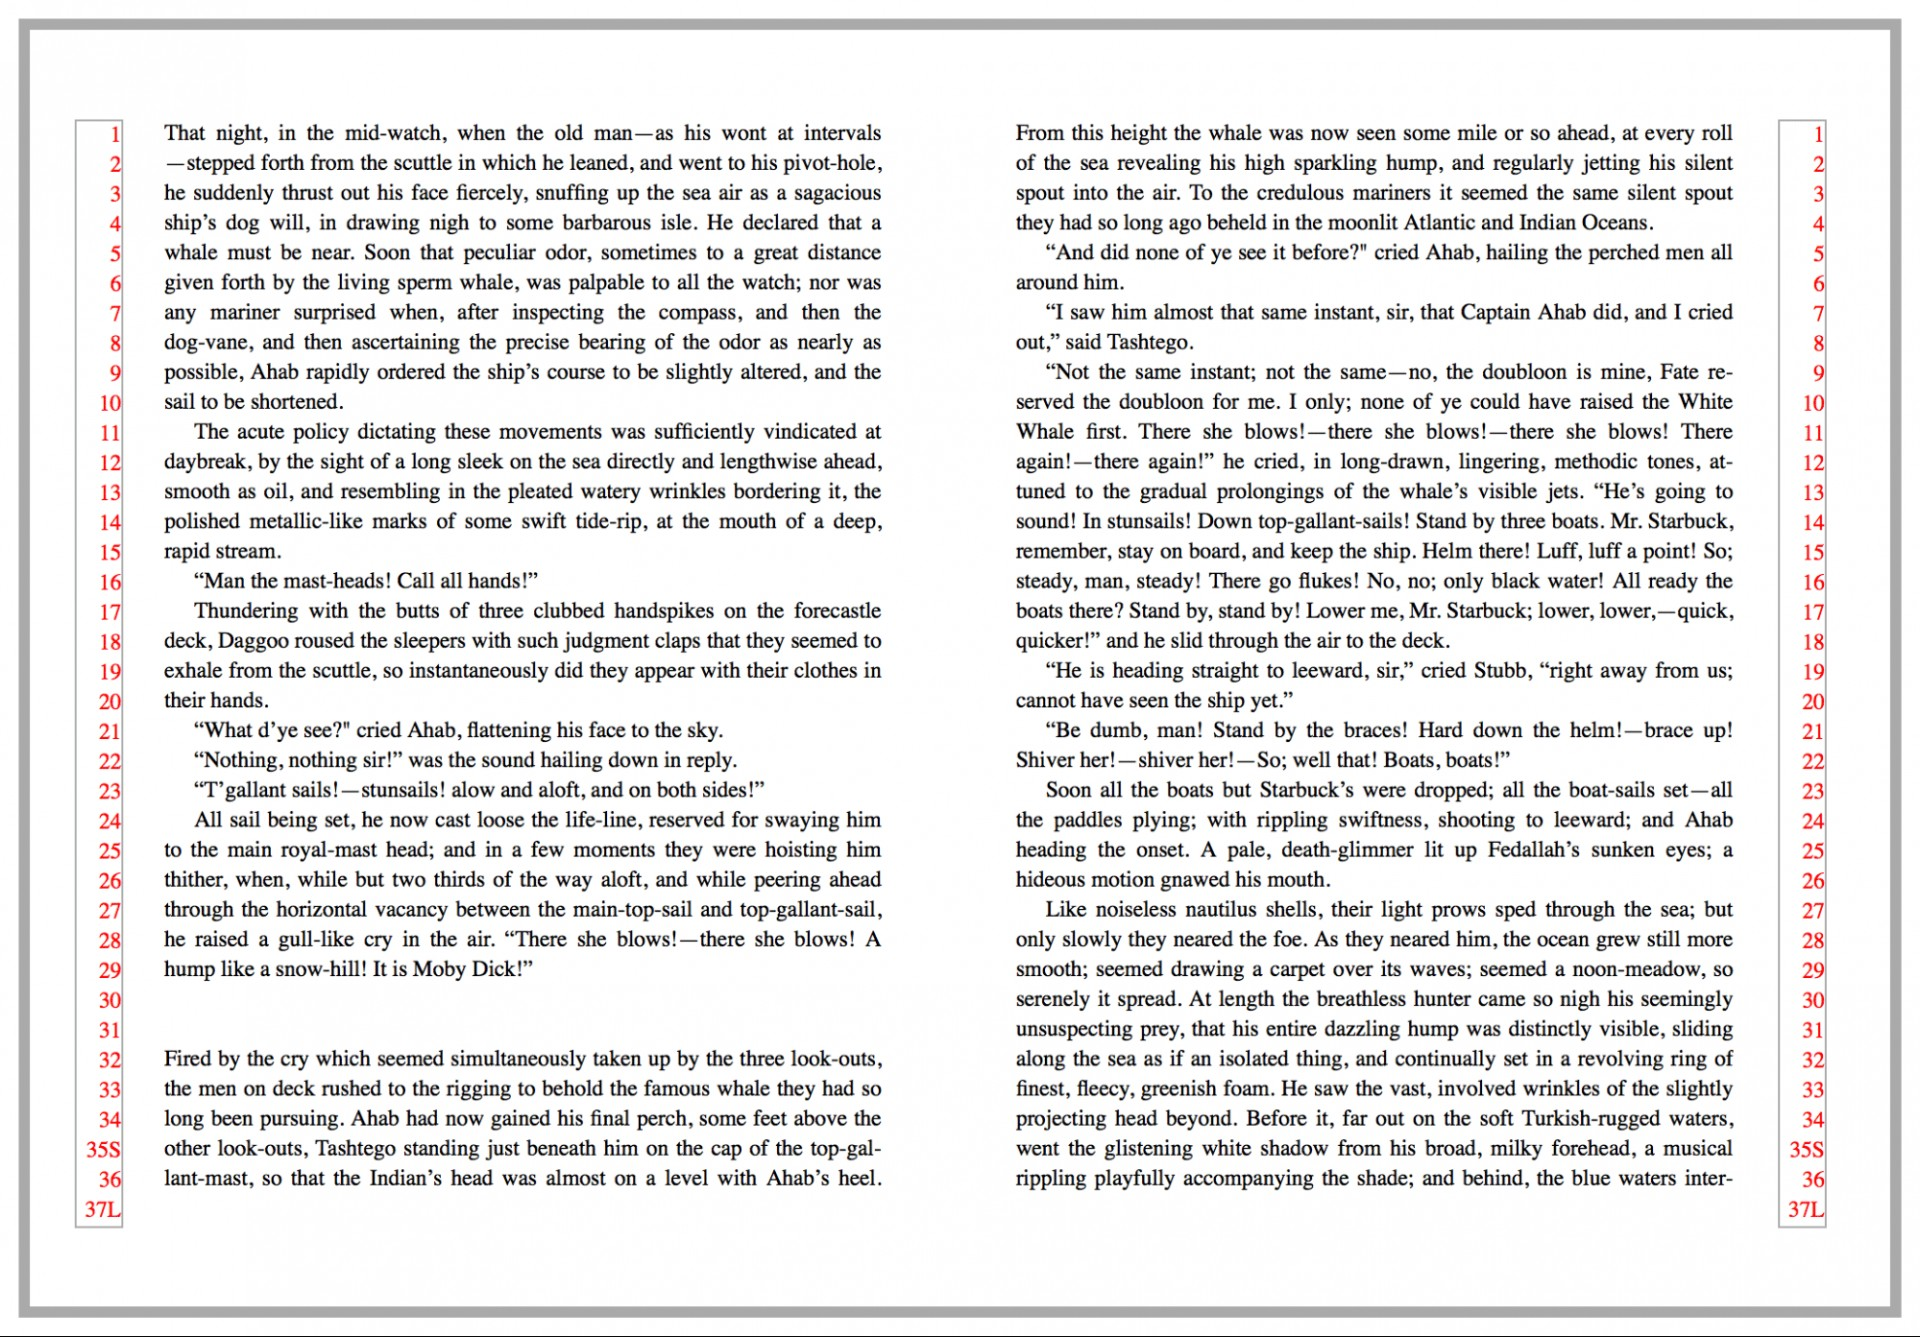 014 Essay Example How To Make An Unusual Self Introduction The Best In Longer With Periods 1920